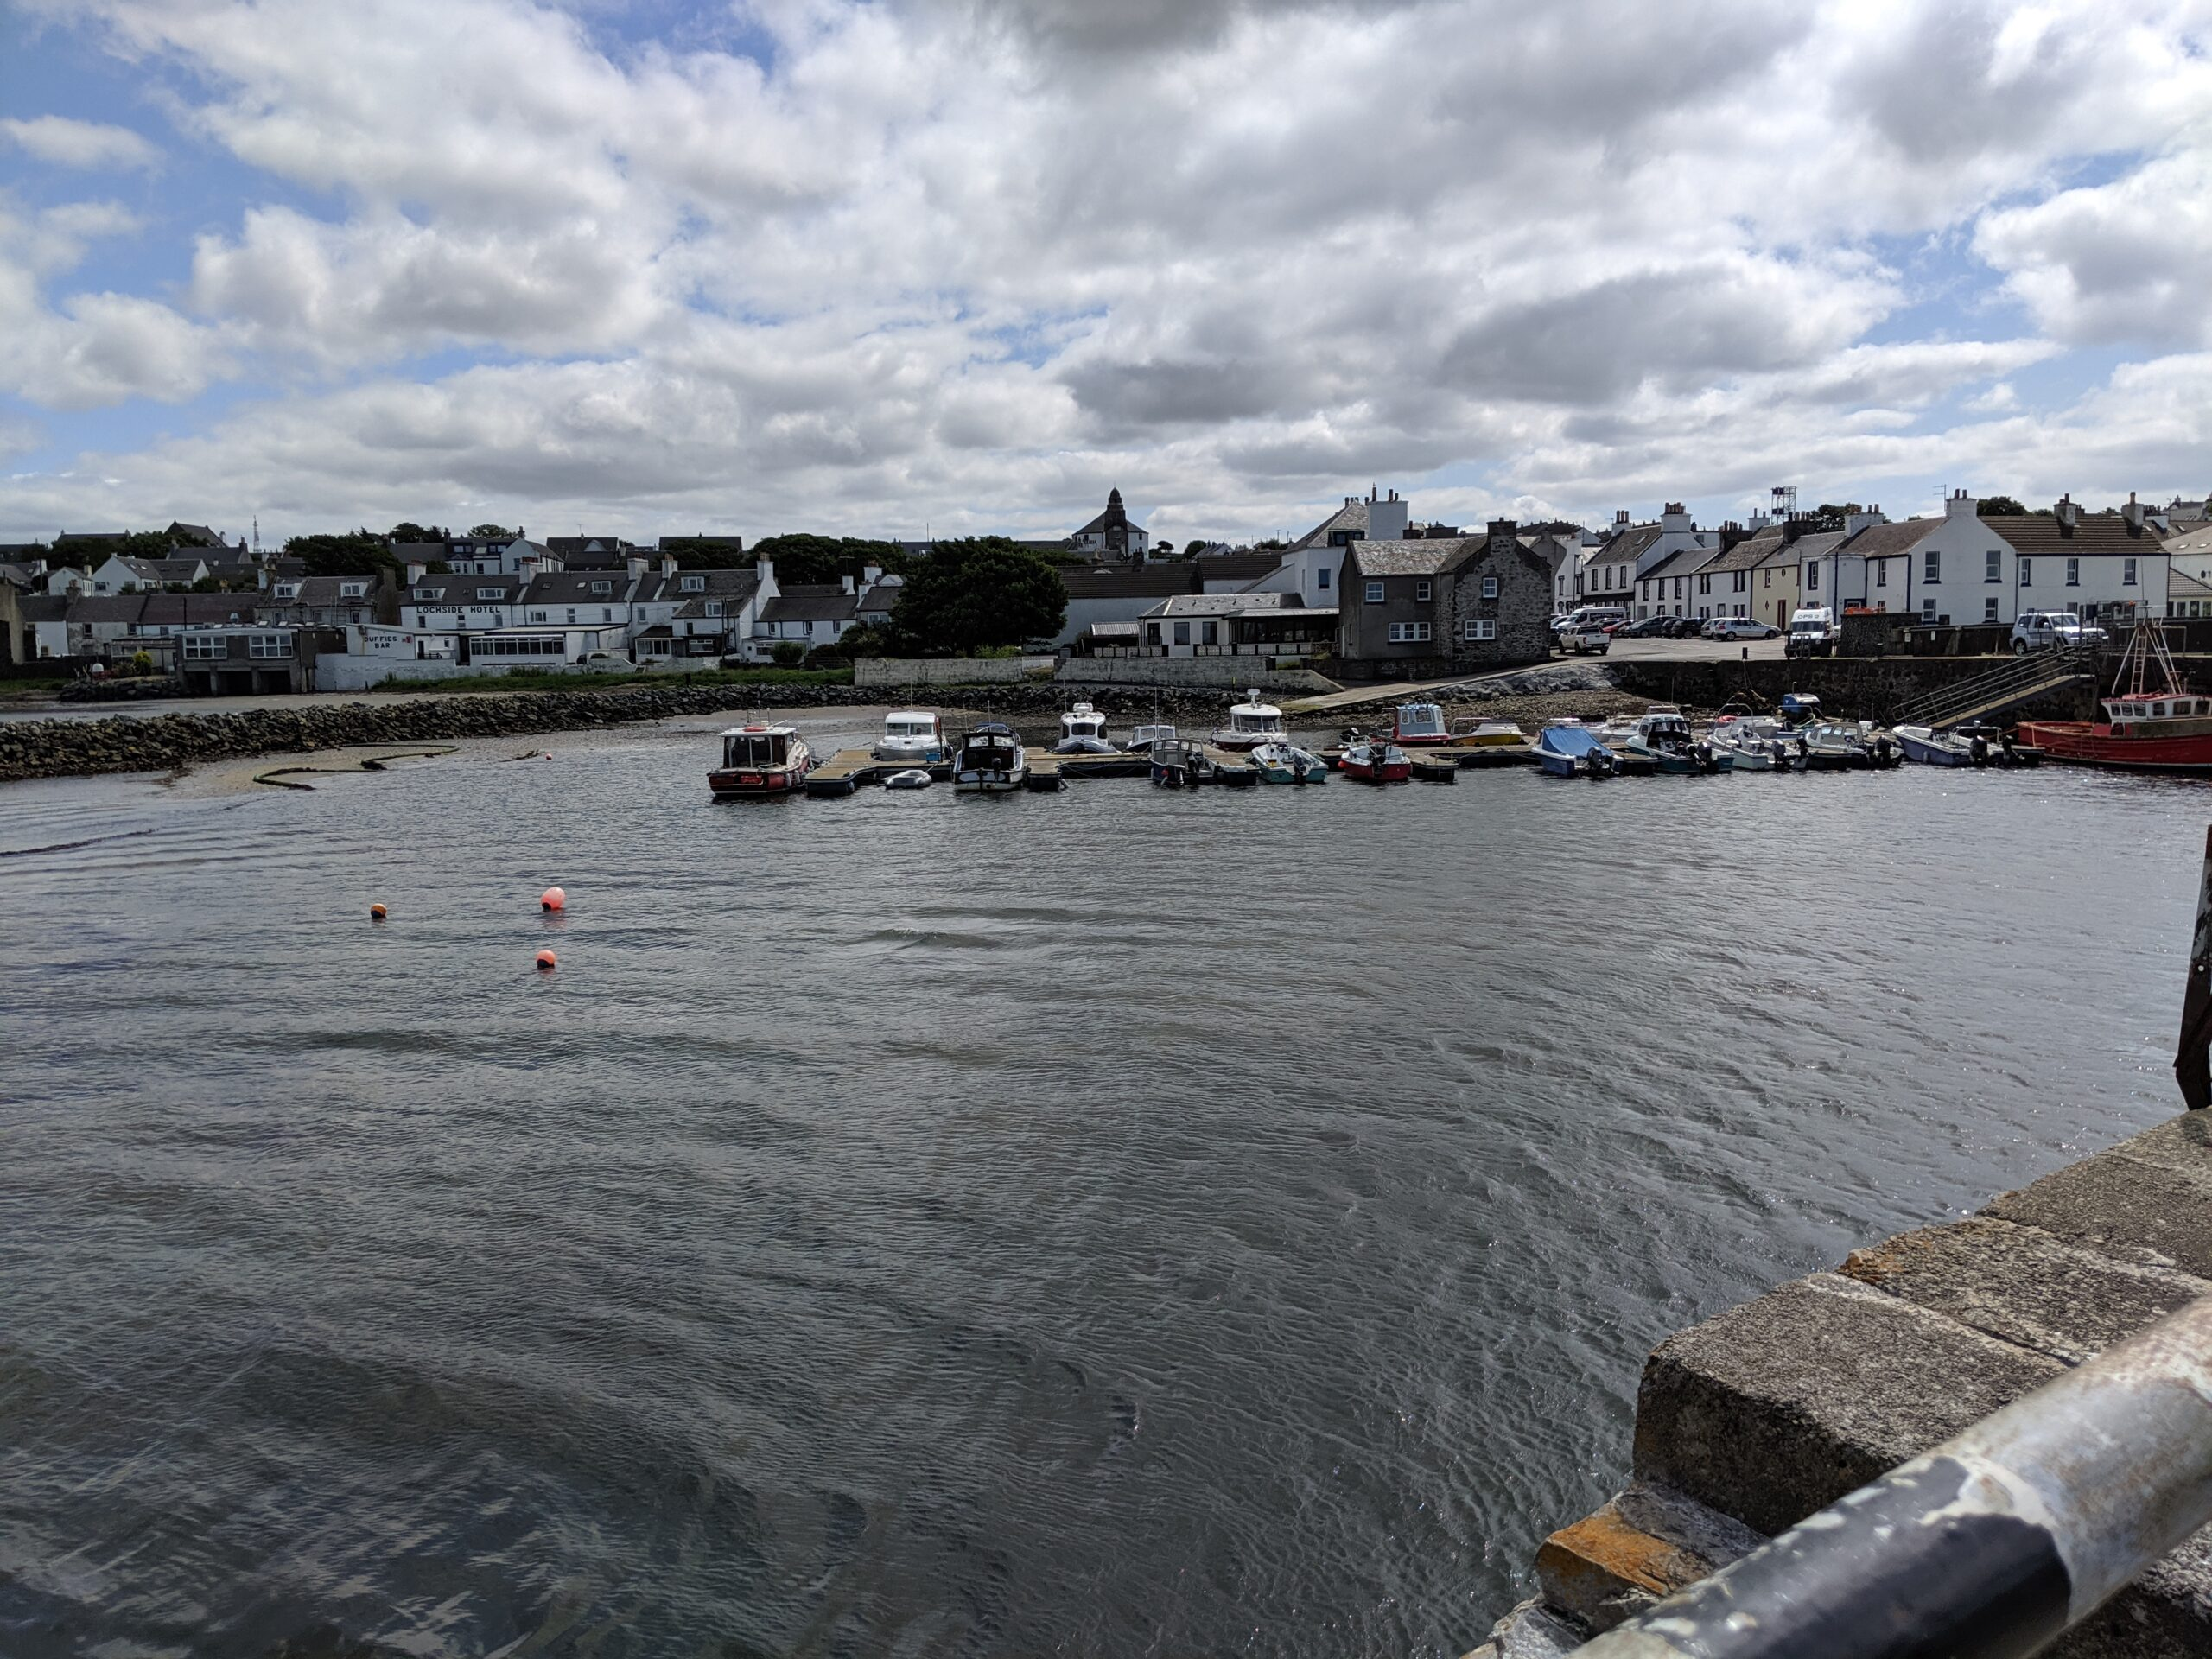 The harbor of the village of Bowmore, Islay, with the round Kilarrow Parish Church rising above the houses clustered by the waterside.